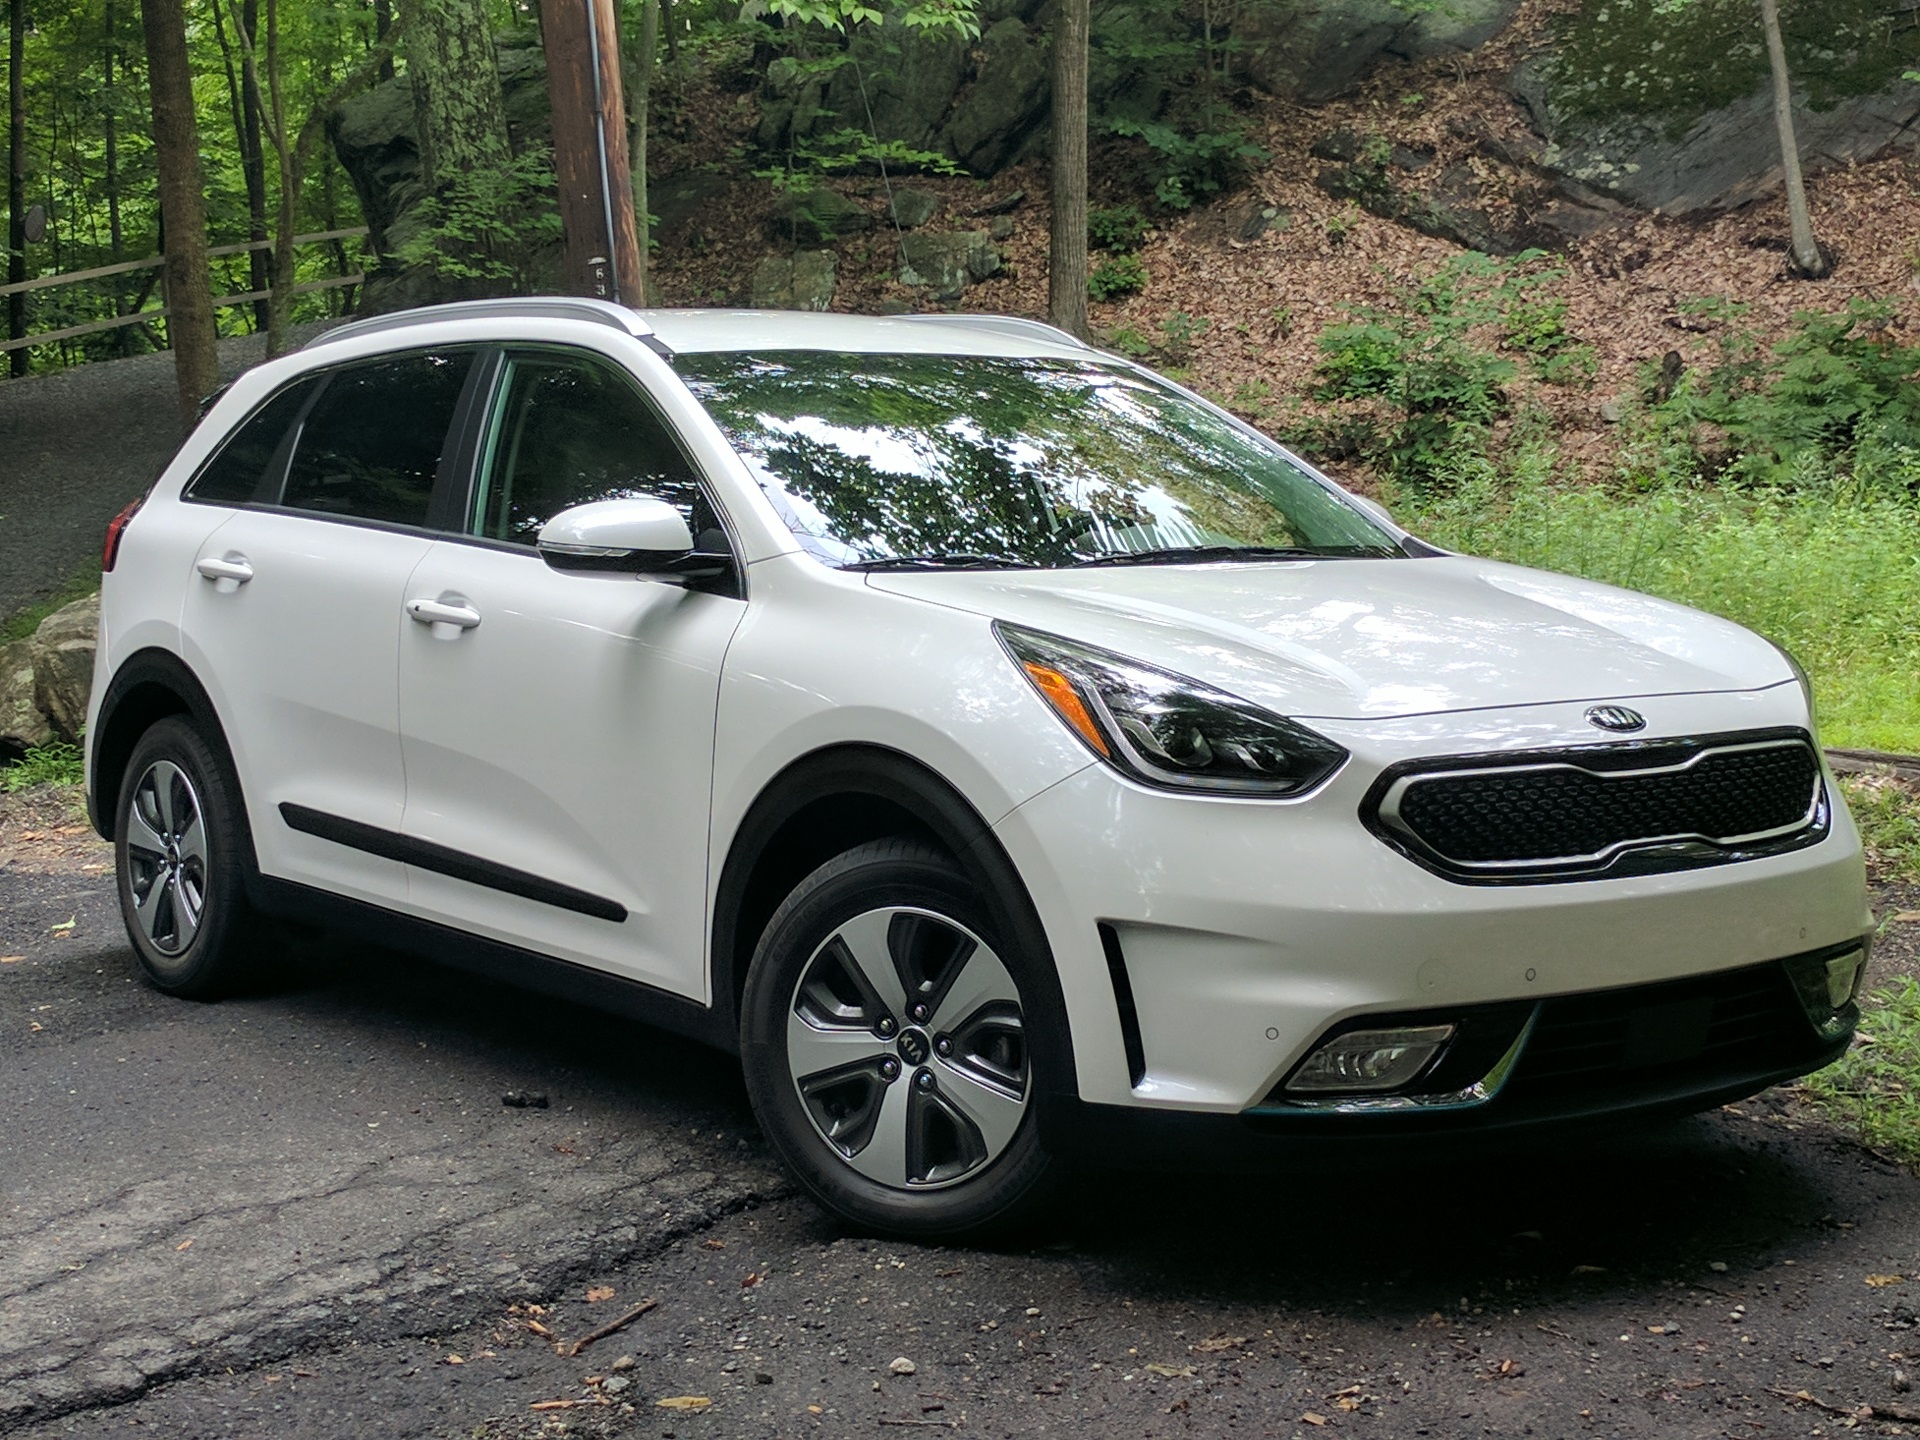 2018 kia niro plug in hybrid review ratings specs. Black Bedroom Furniture Sets. Home Design Ideas